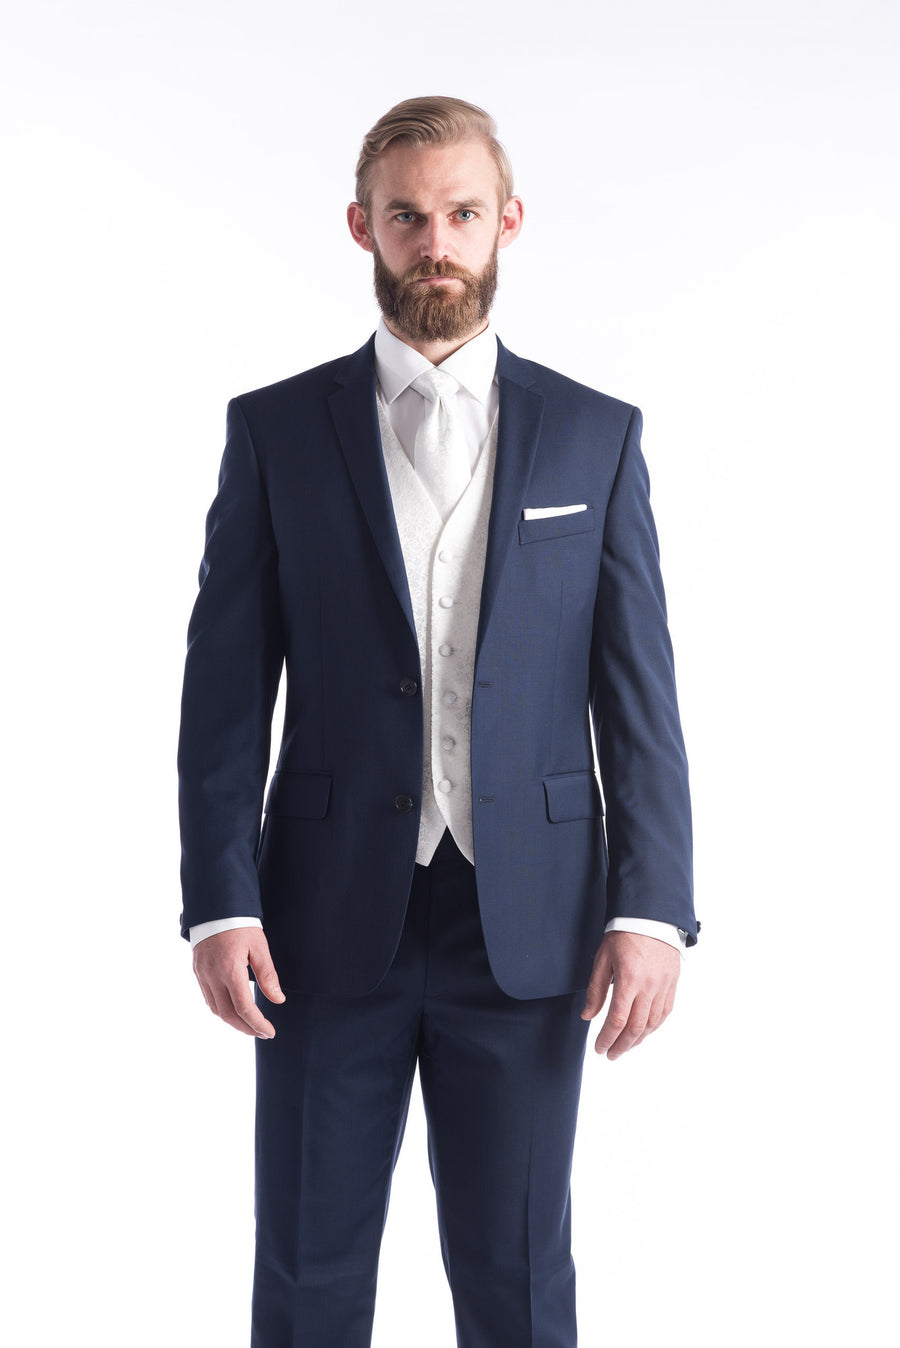 Hire Suit - Paris